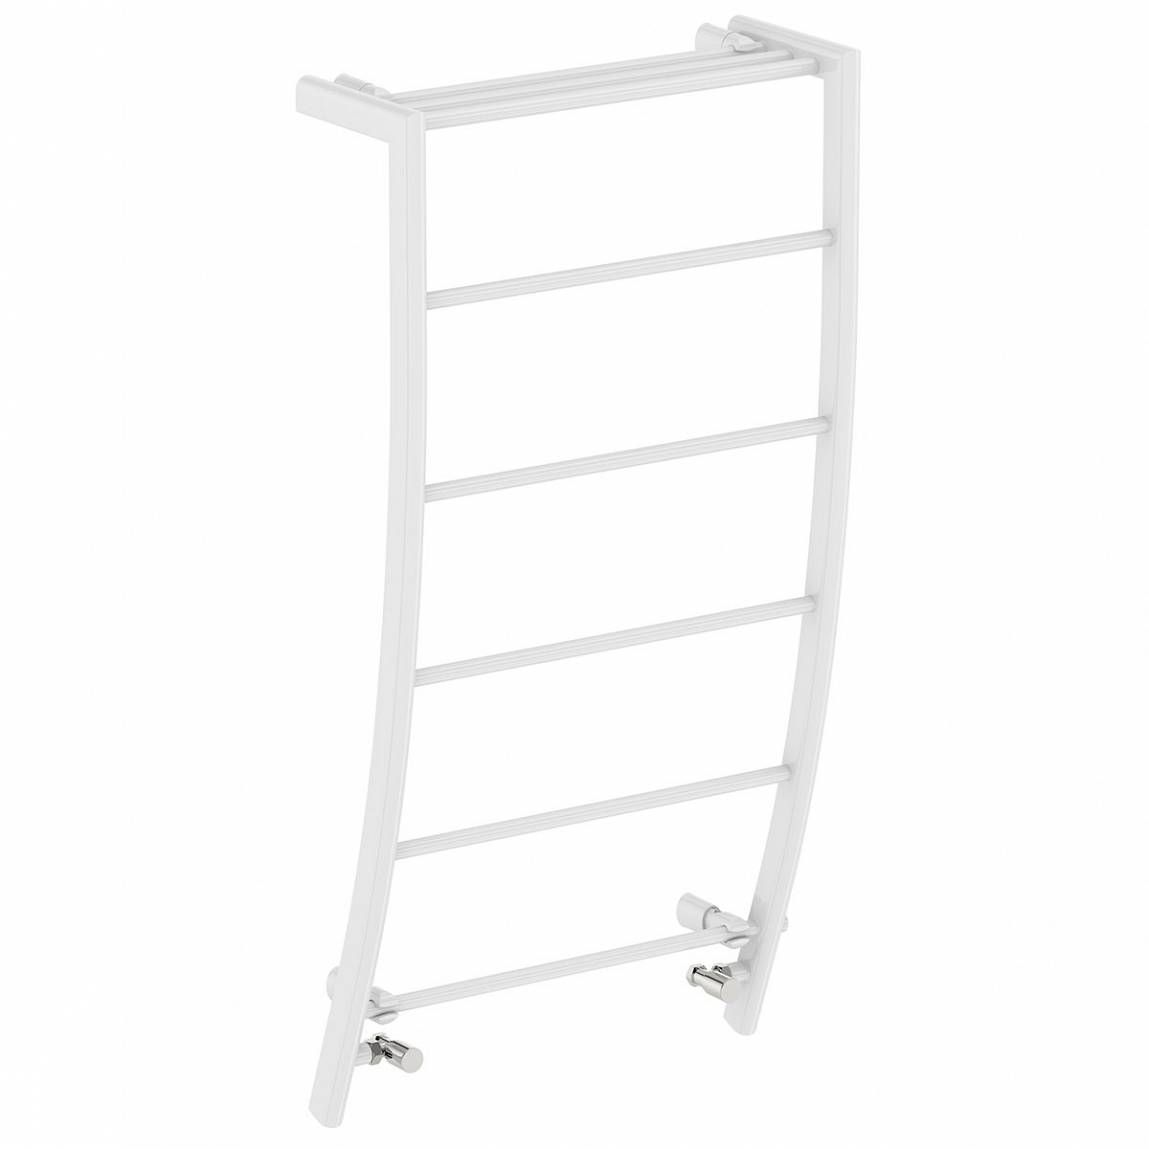 Clarity White curved heated towel rail 1200